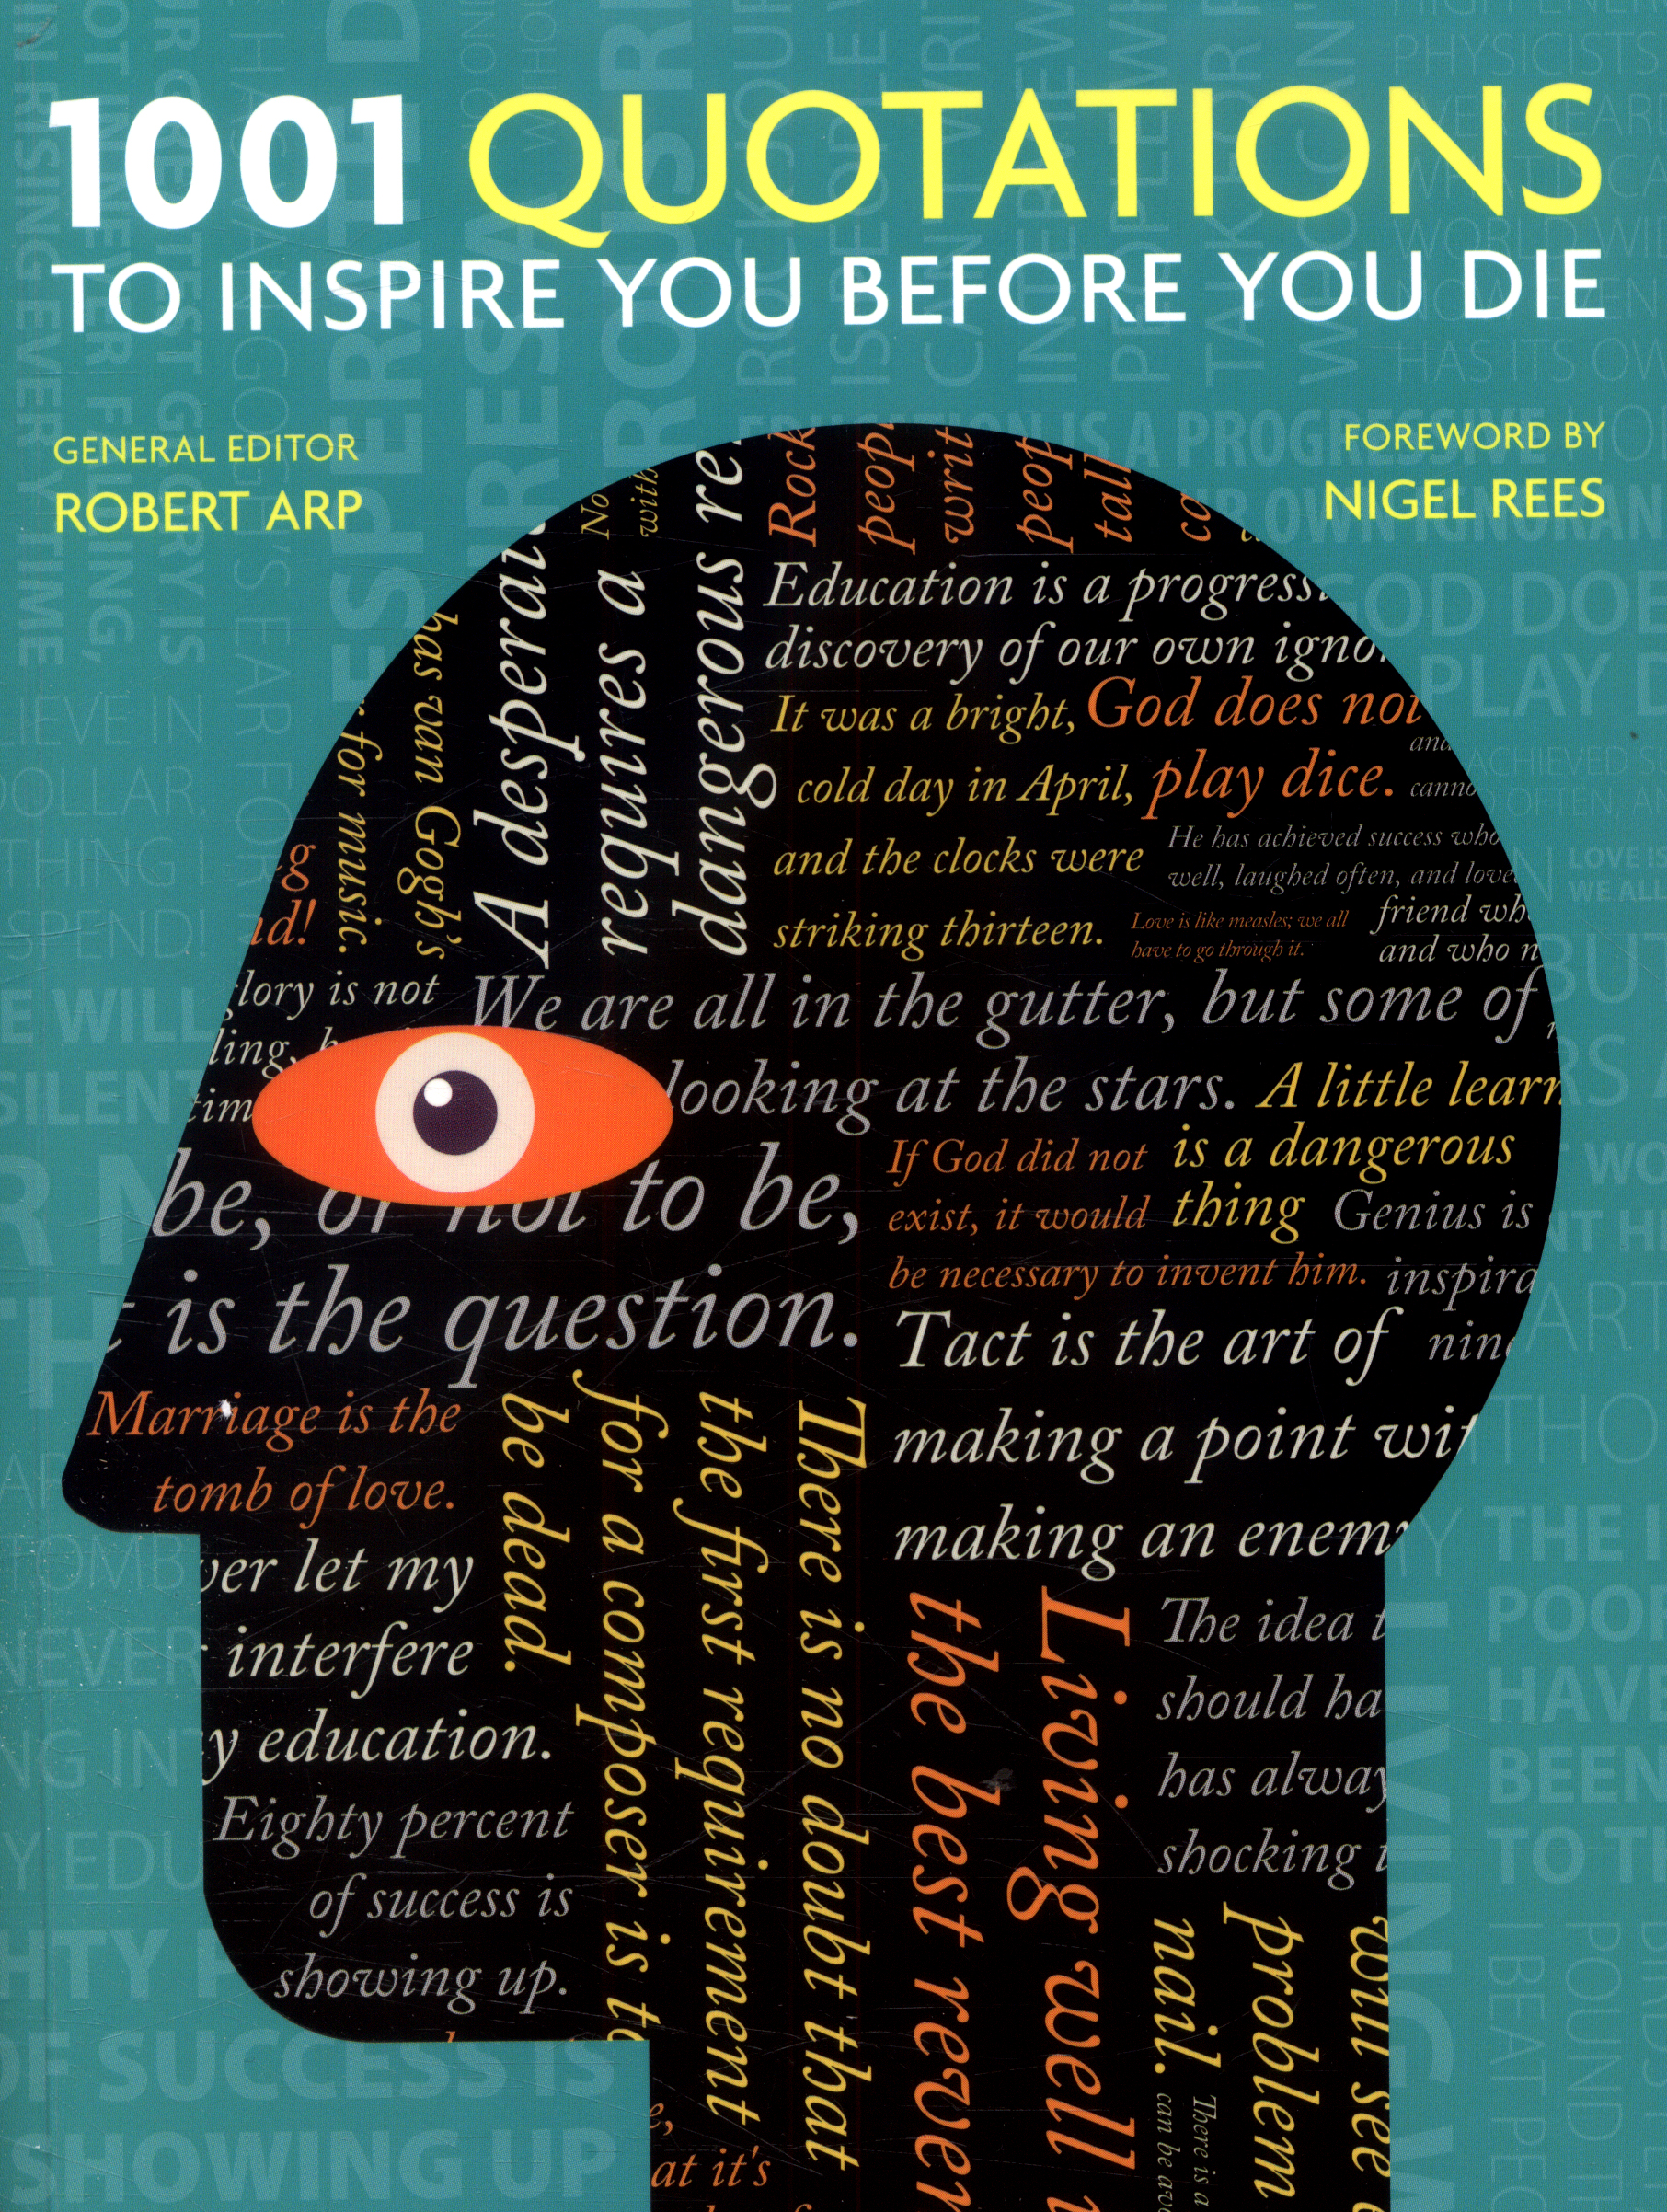 1001 Games To Play Before You Die List 1001 quotations to inspire you before you diearp, robert